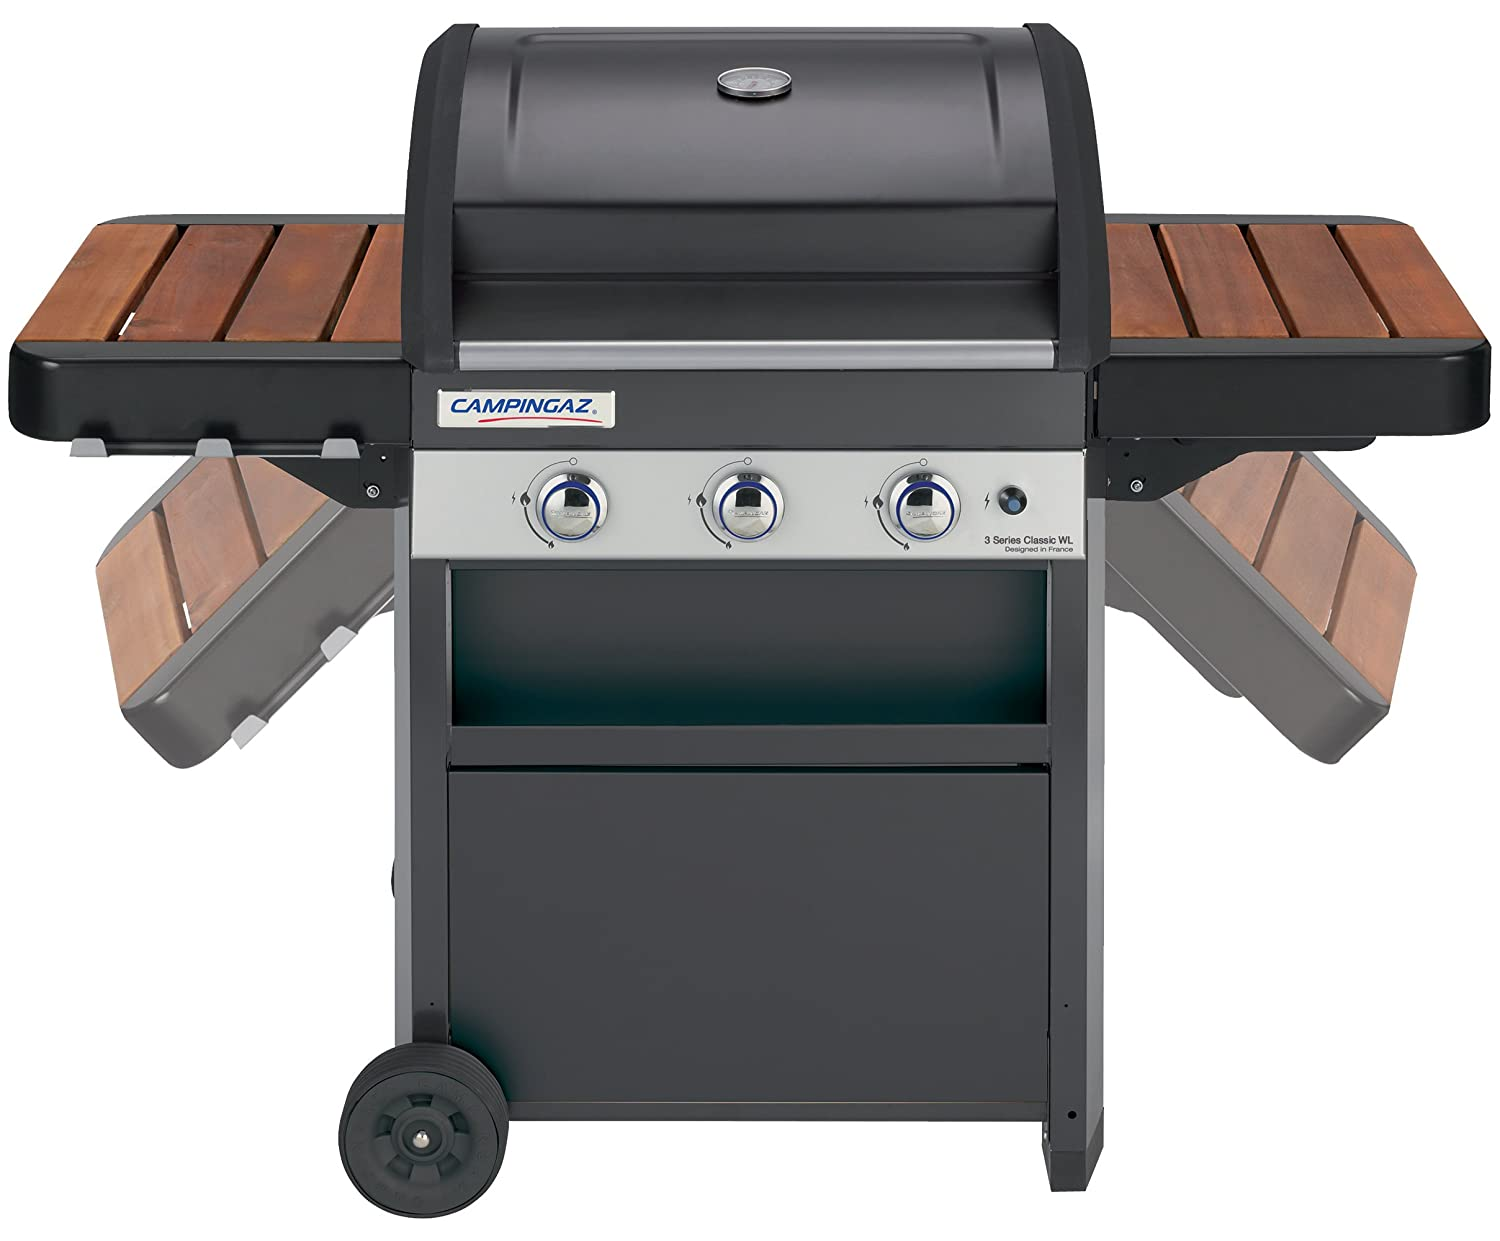 Campingaz Gas BBQ 3 Series Woody LX - 3 quemadores de gas de acero inoxidable: Amazon.es: Jardín